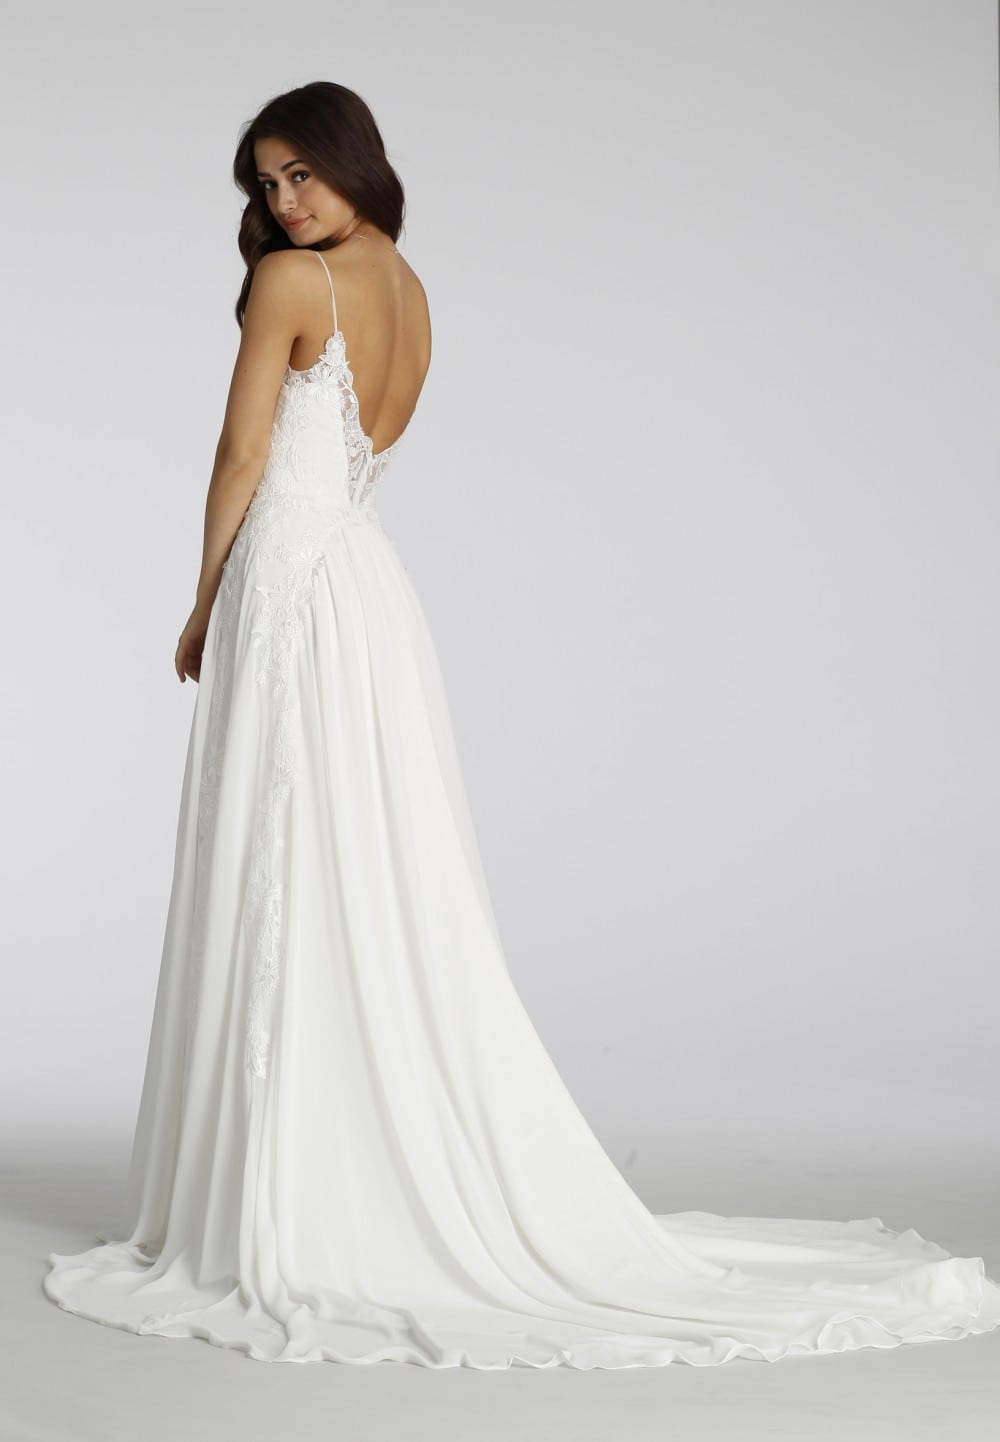 Low back wedding dress with spaghetti straps | Back detail Ti Adora Style 7654